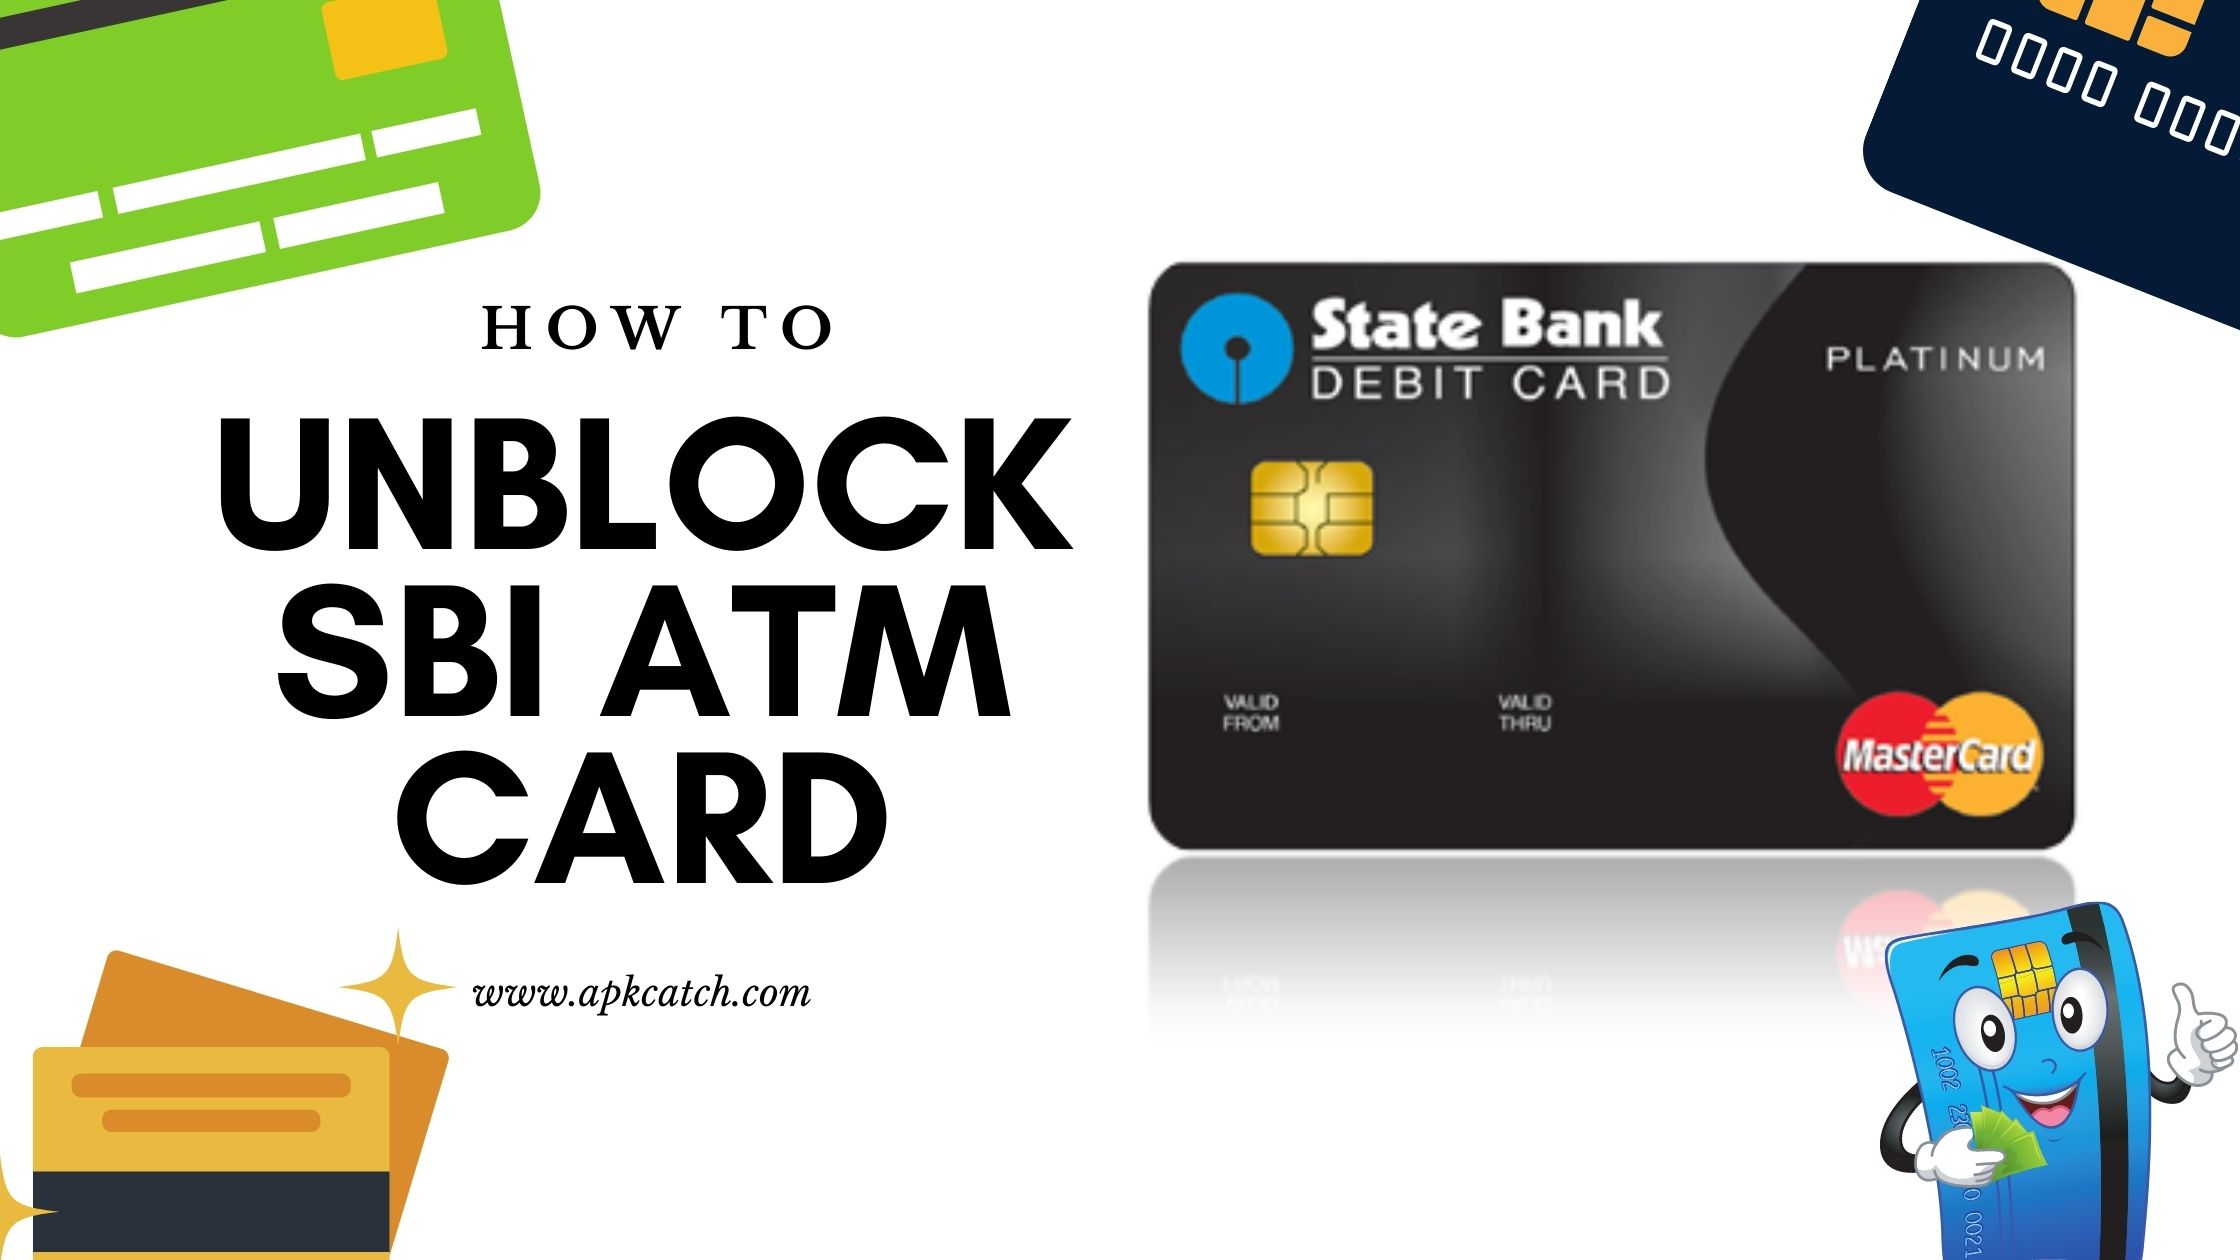 How to Unblock SBI ATM Card